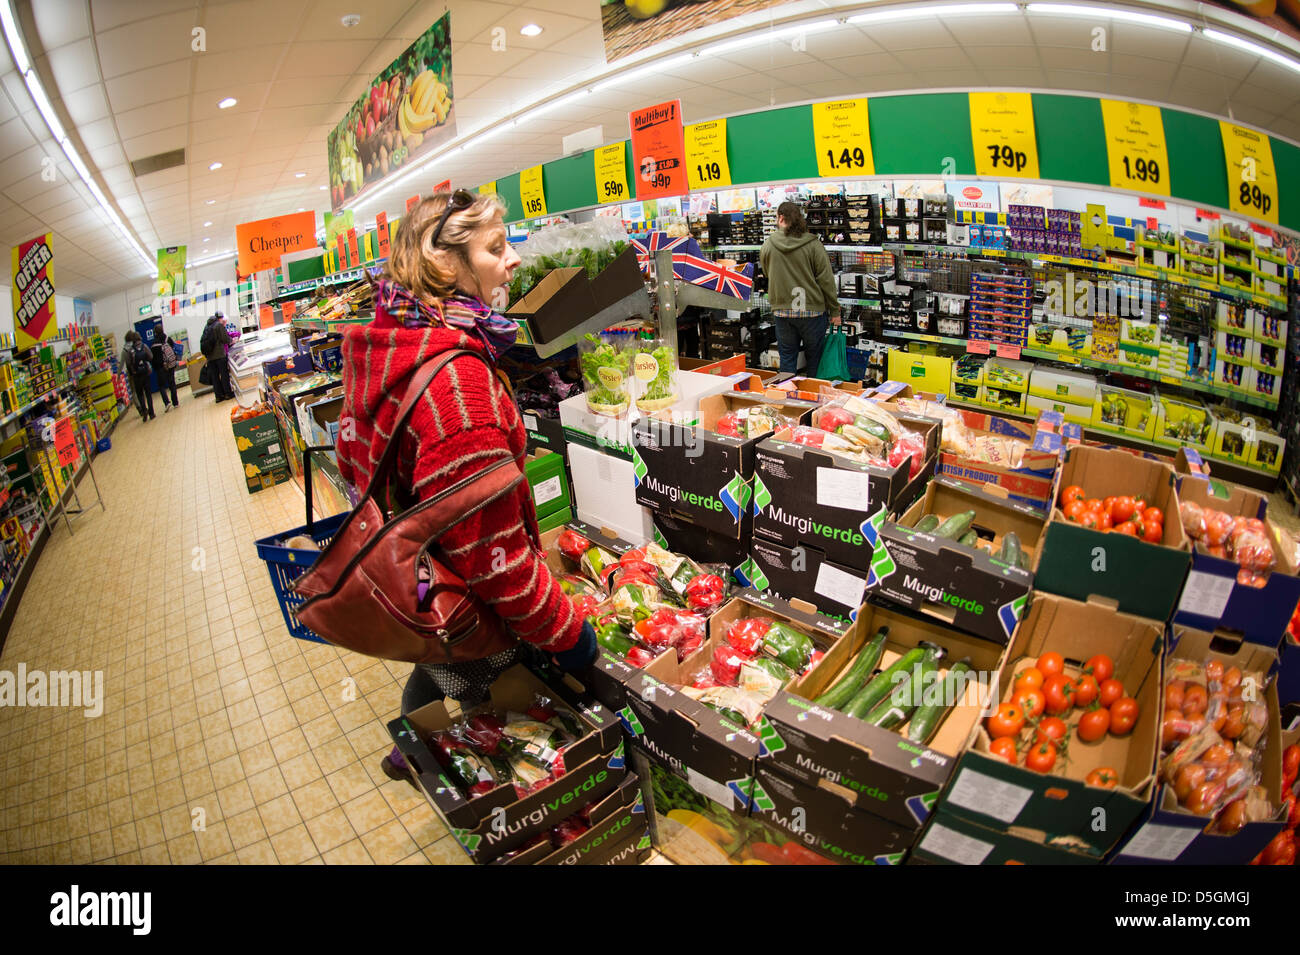 A middle aged woman shopping for fresh vegetables and other food in LIDL discount supermarket, UK - Stock Image